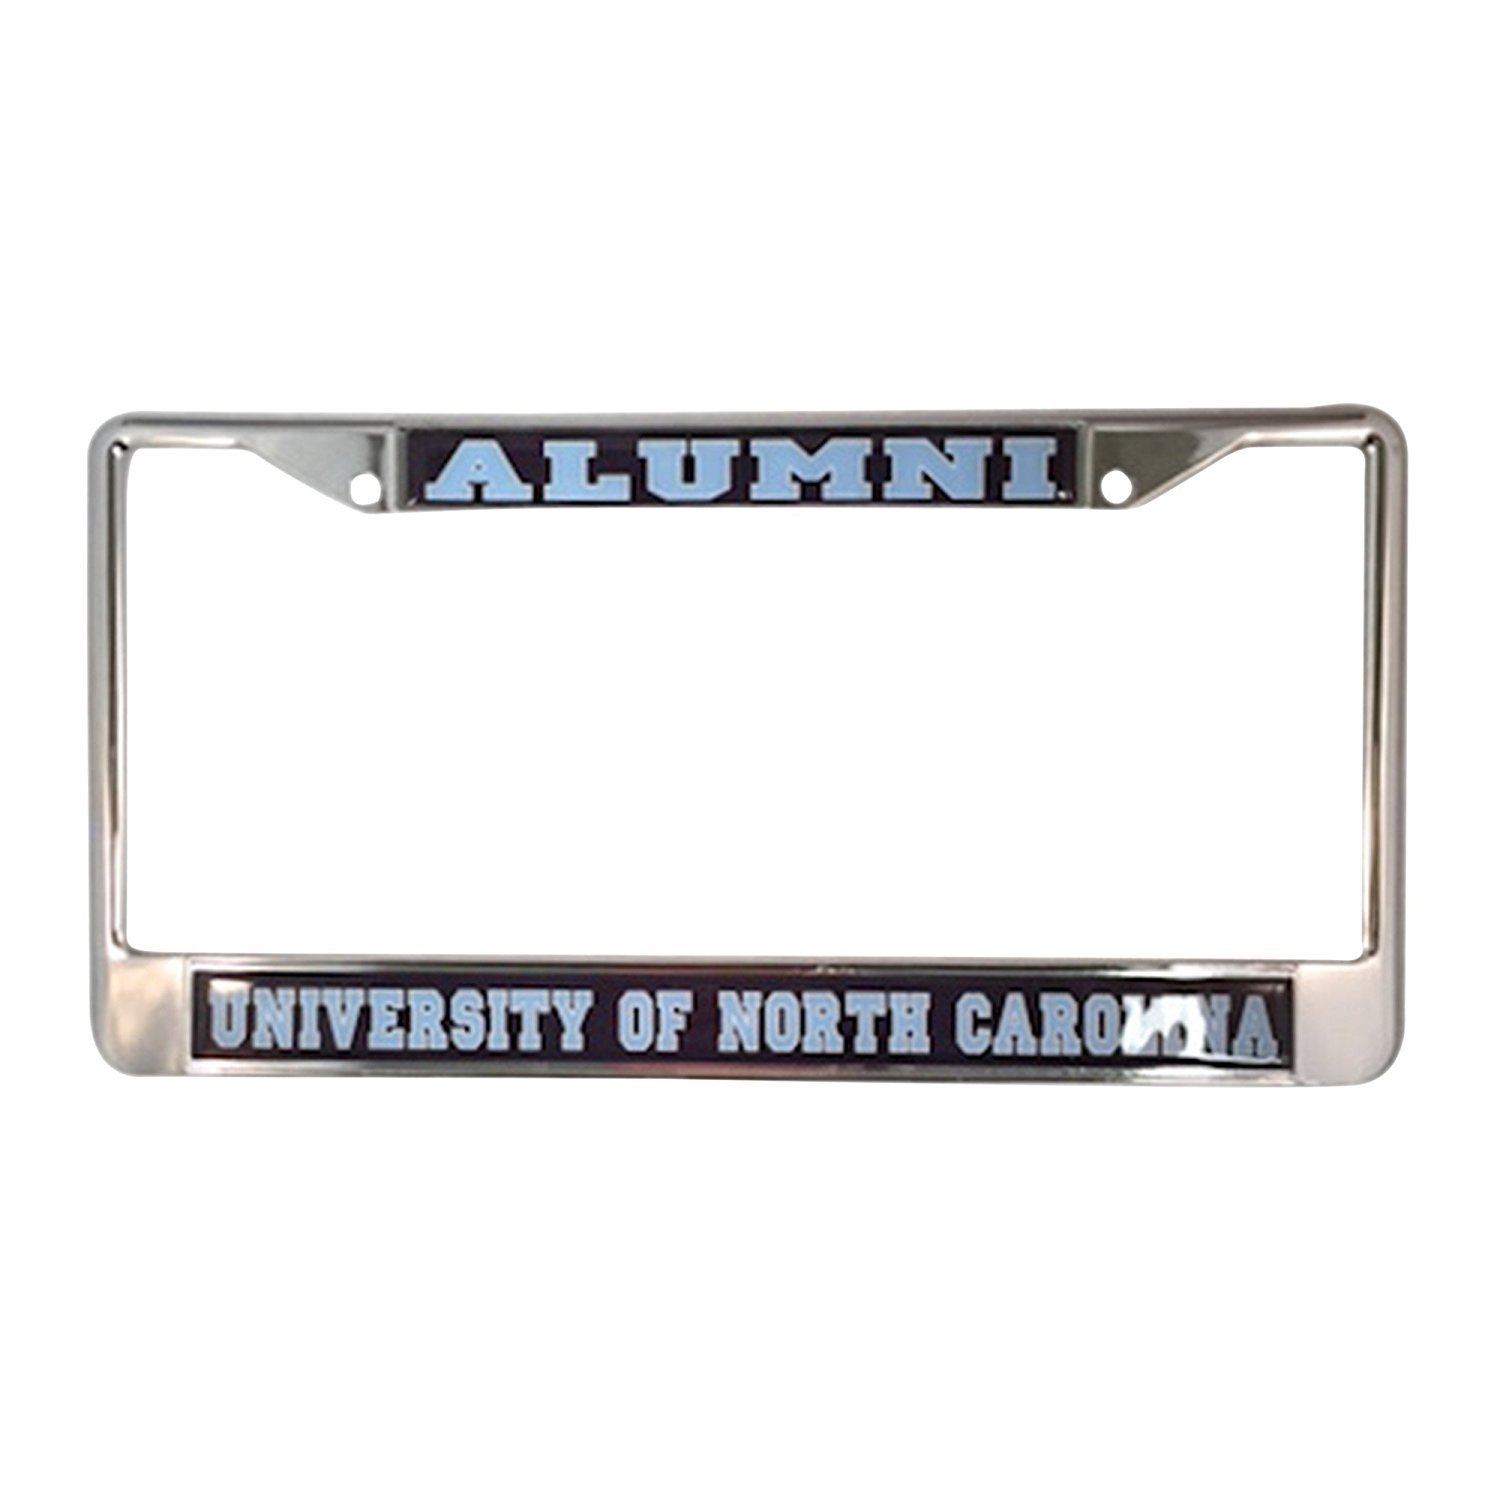 University of North Carolina Alumni Tar Heels Silver Metal License Plate Frame